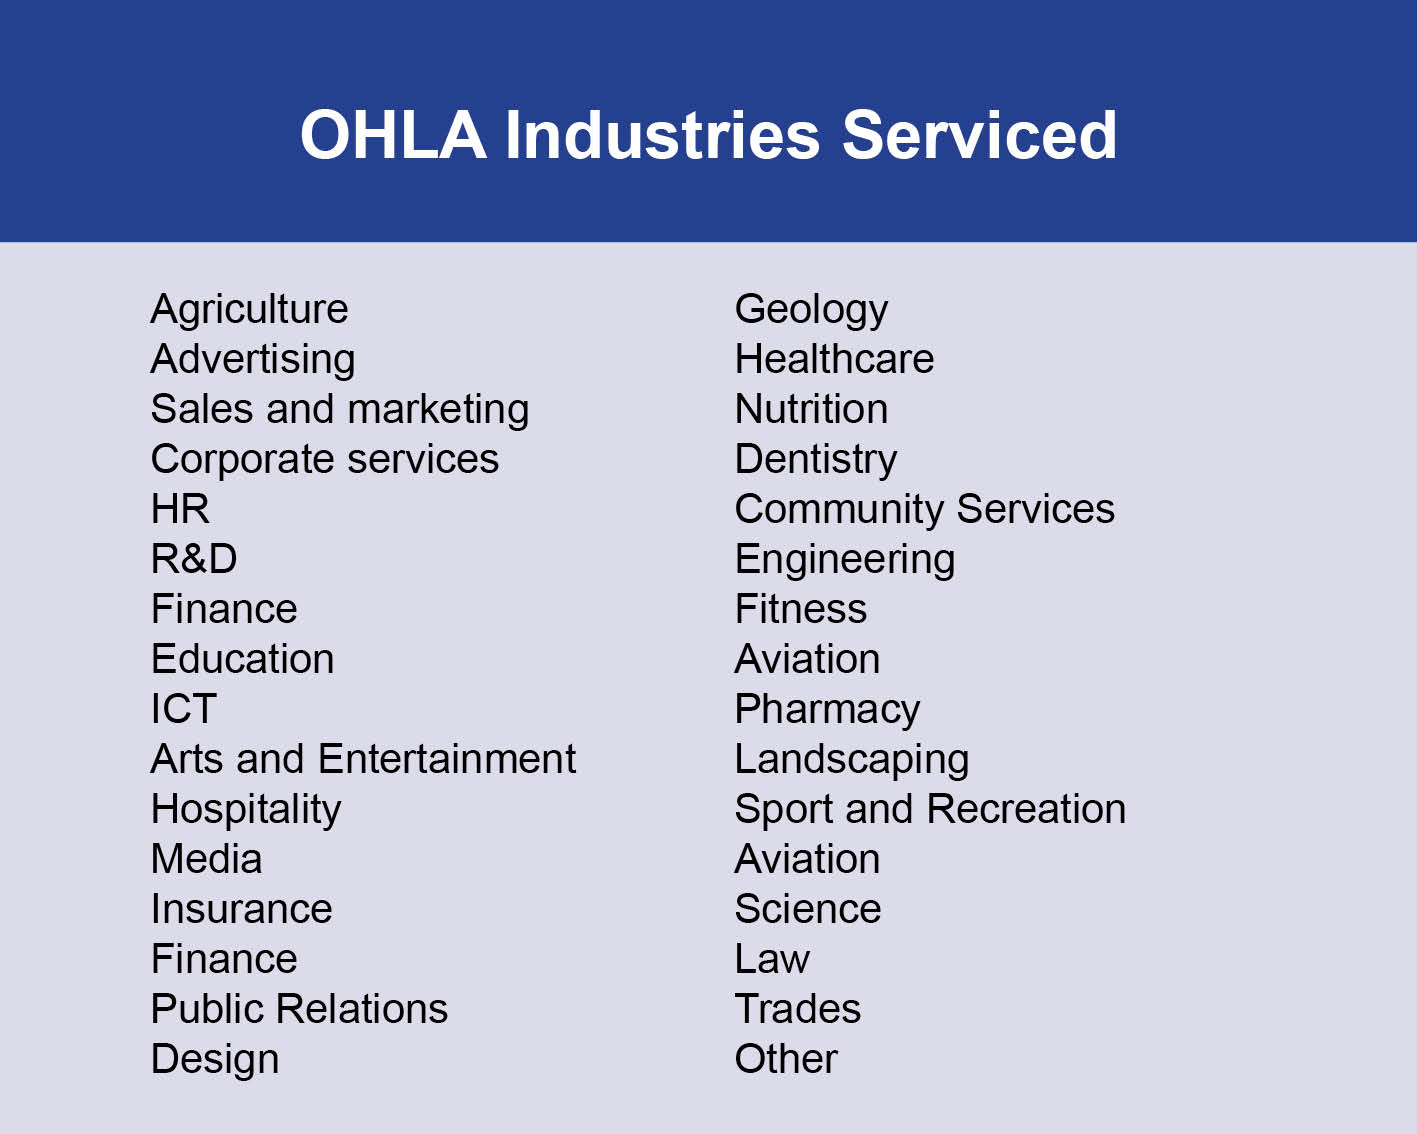 OHLA industries serviced